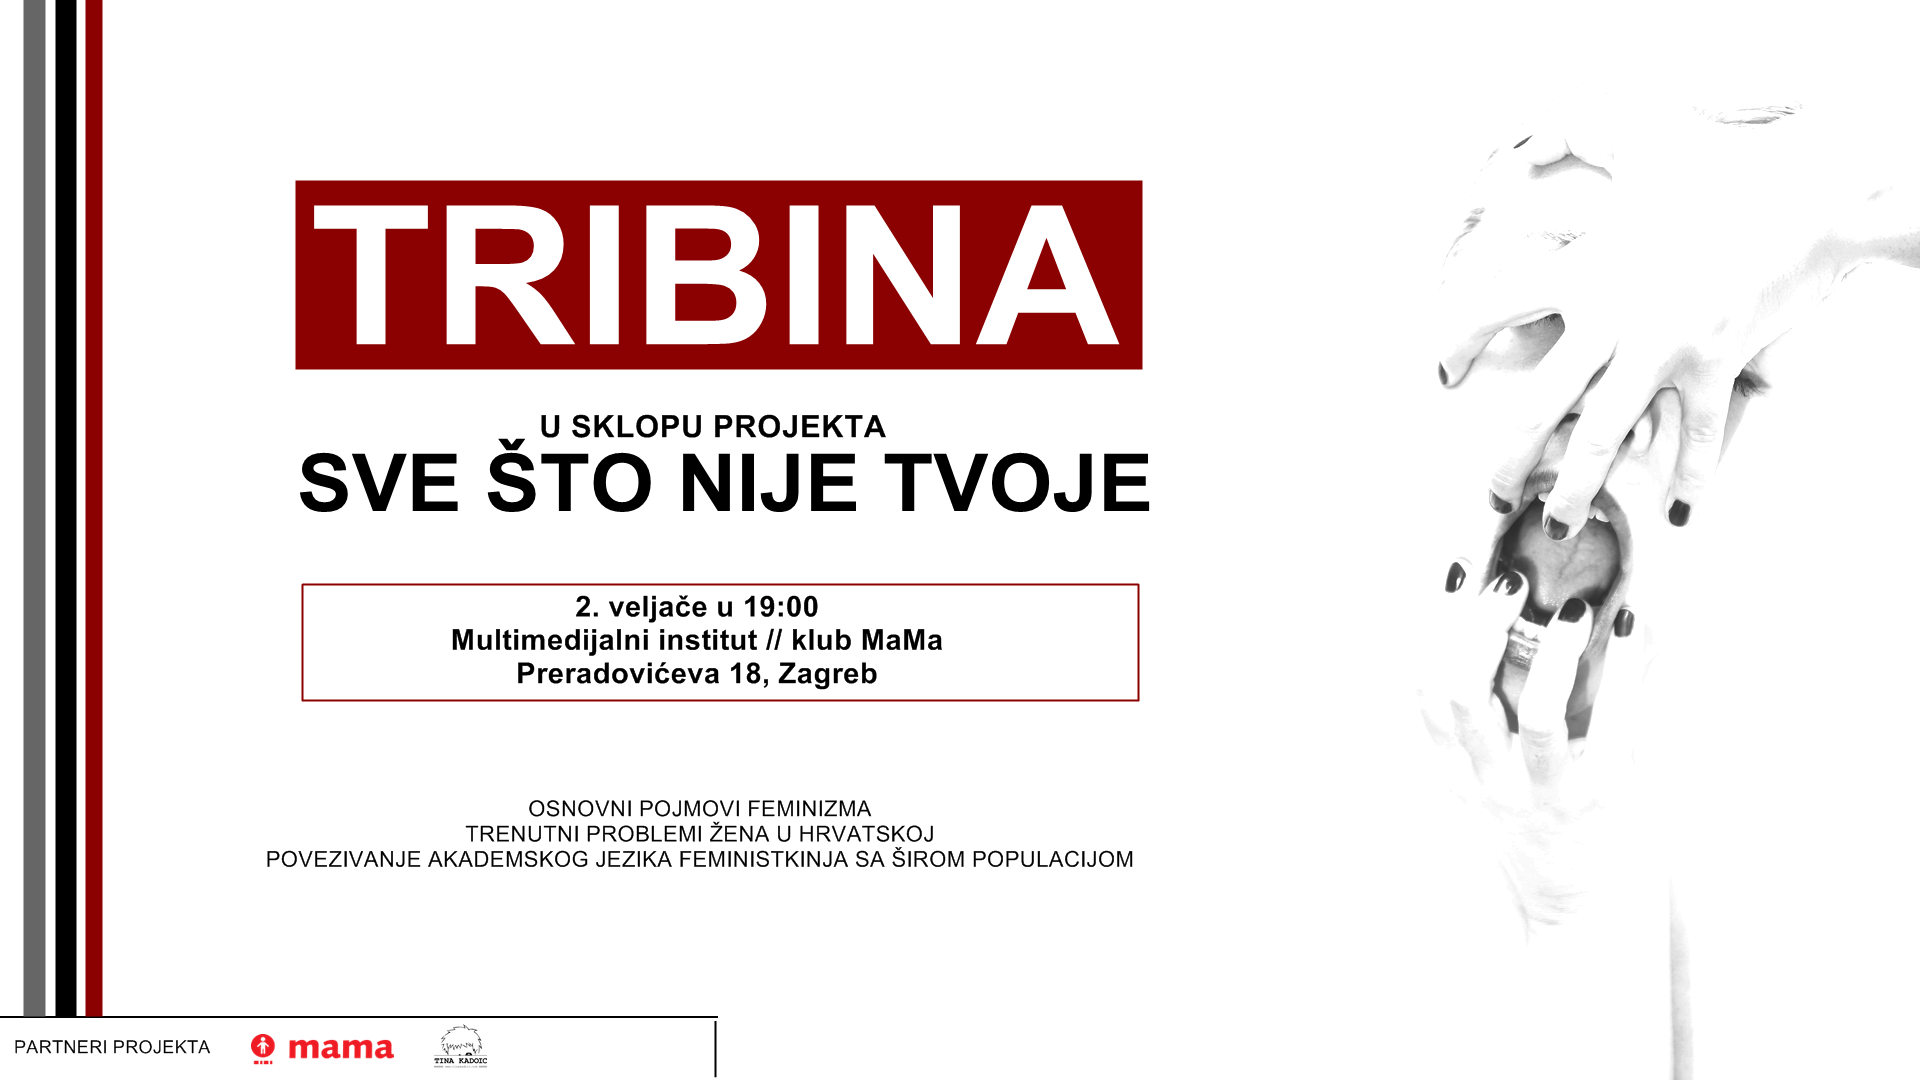 fb-tribina-event